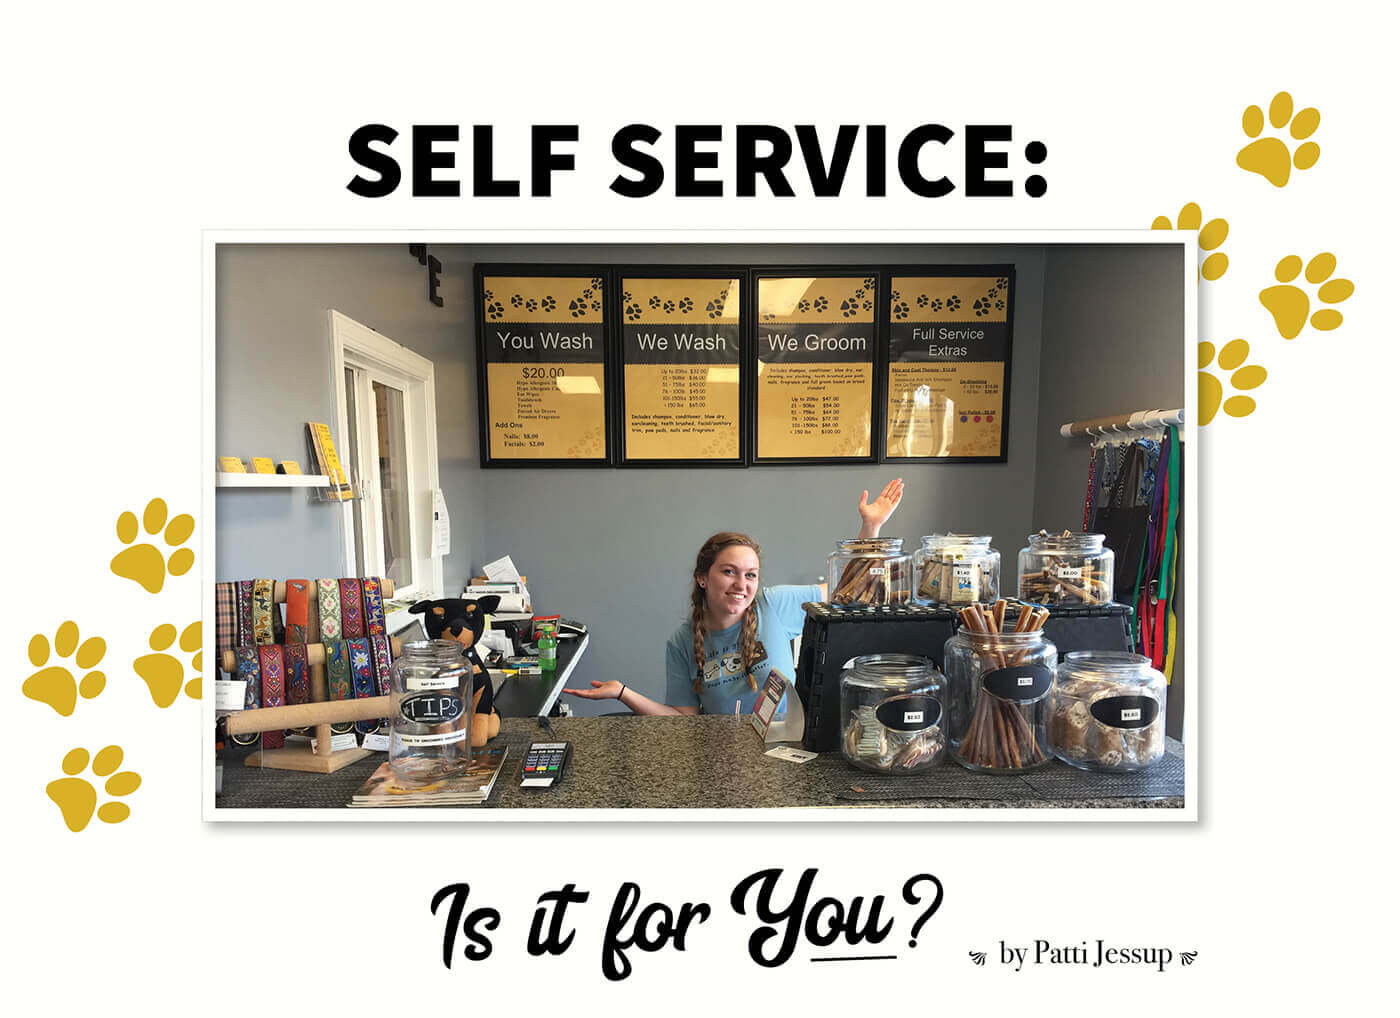 Self service is it for you groomer to groomer pet grooming self service is it for you groomer to groomer pet grooming news stories and videos solutioingenieria Gallery